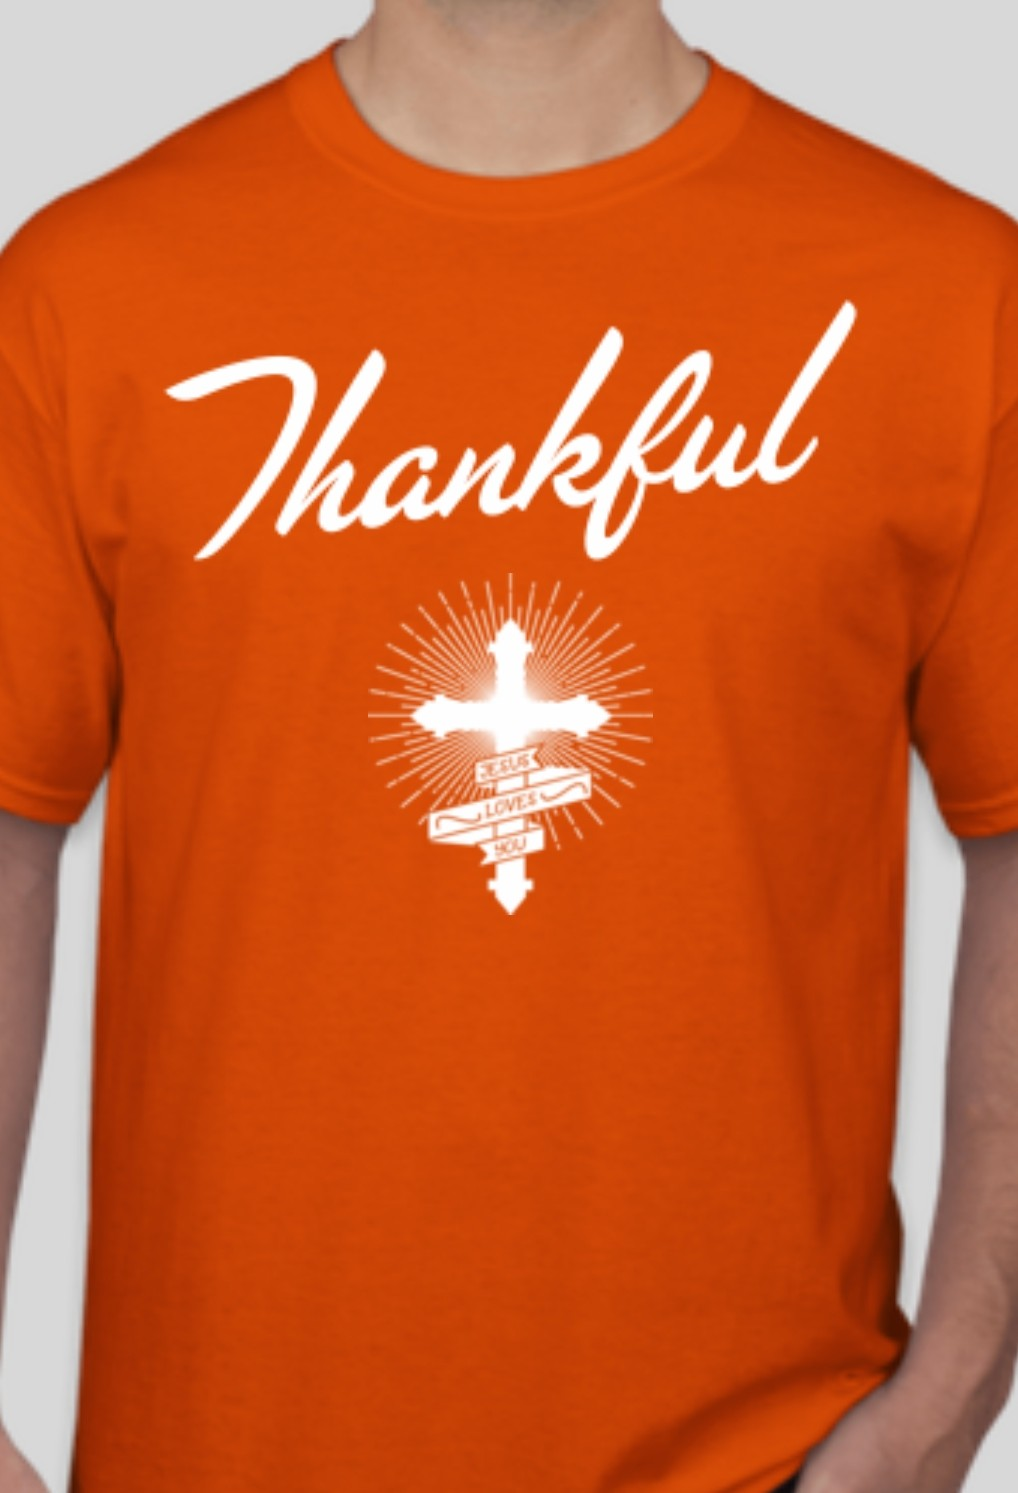 Thankful Orange T-shirt